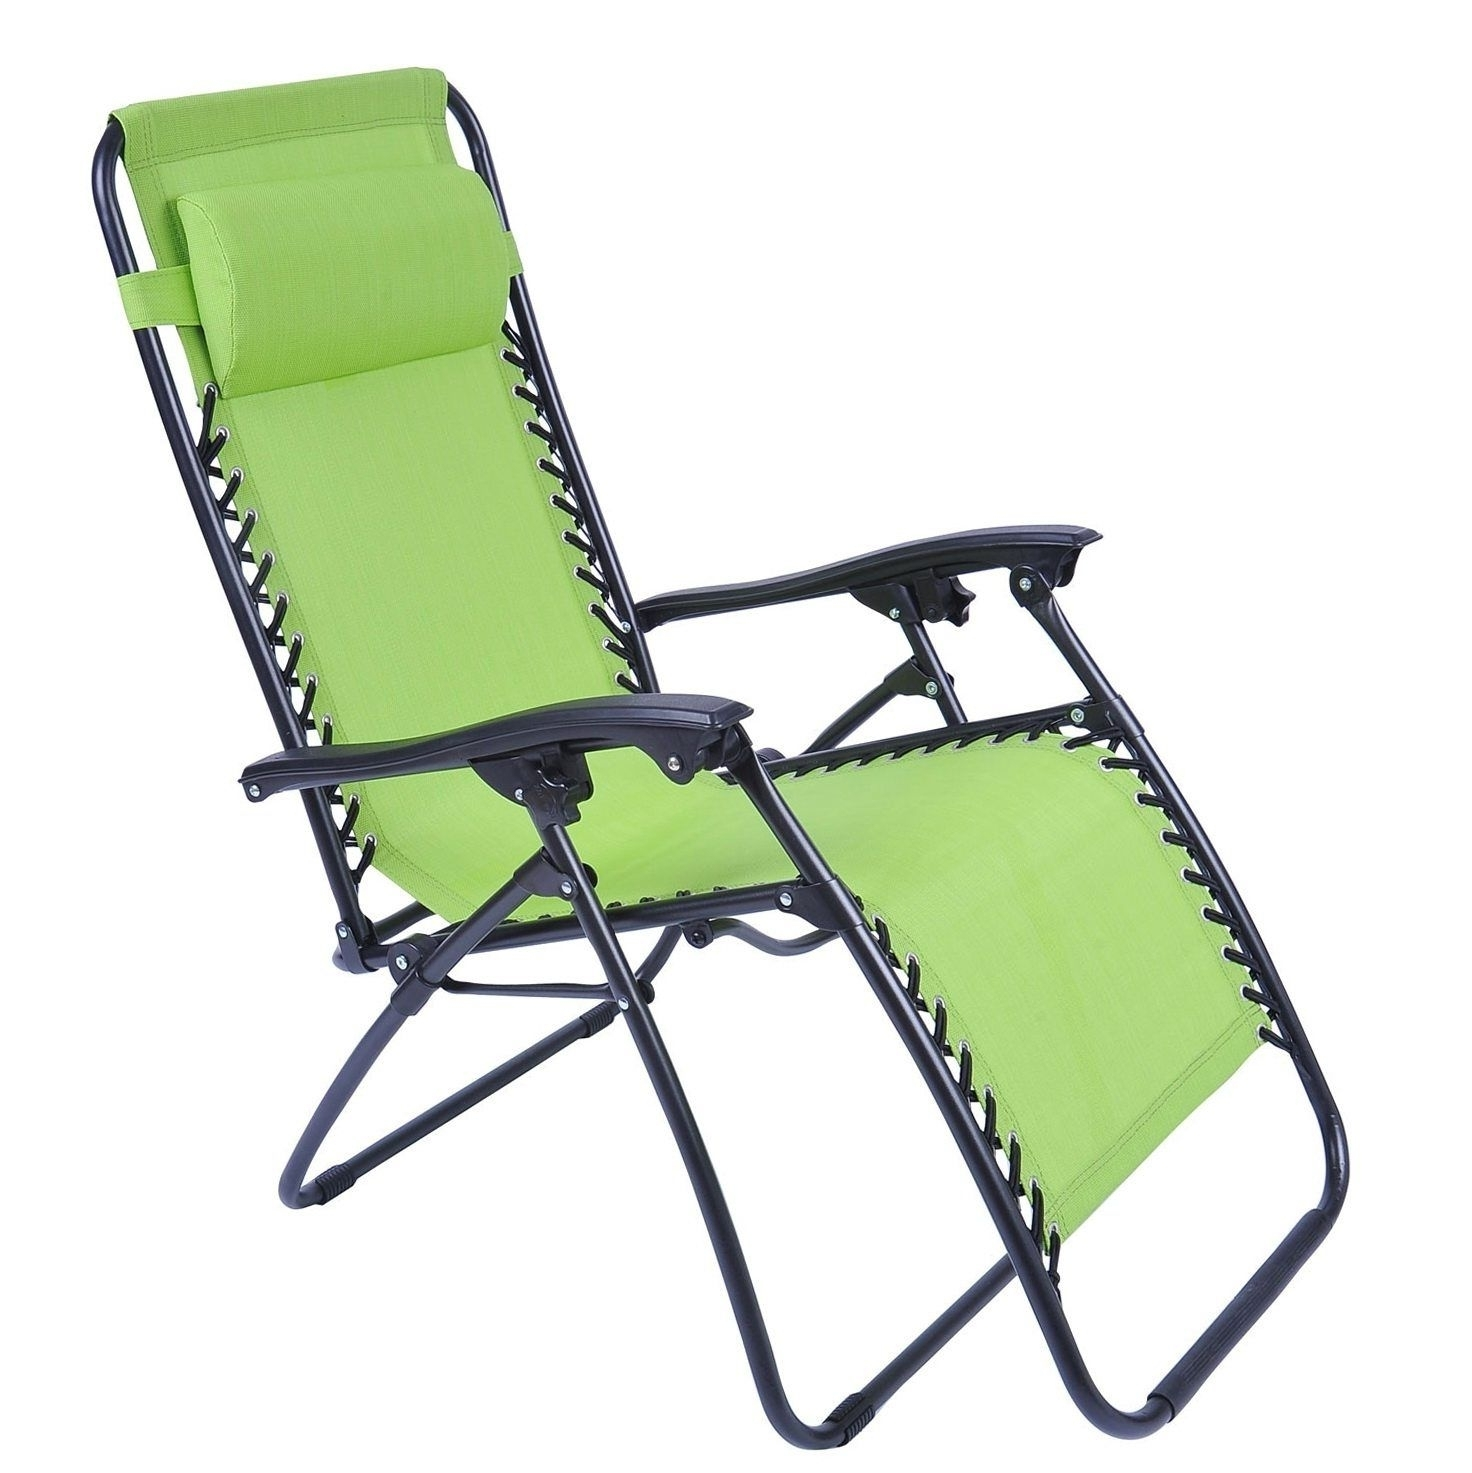 Preferred Lounge Chair Outdoor Folding Folding Chaise Lounge Chair Patio Regarding Folding Chaise Lounges (View 10 of 15)